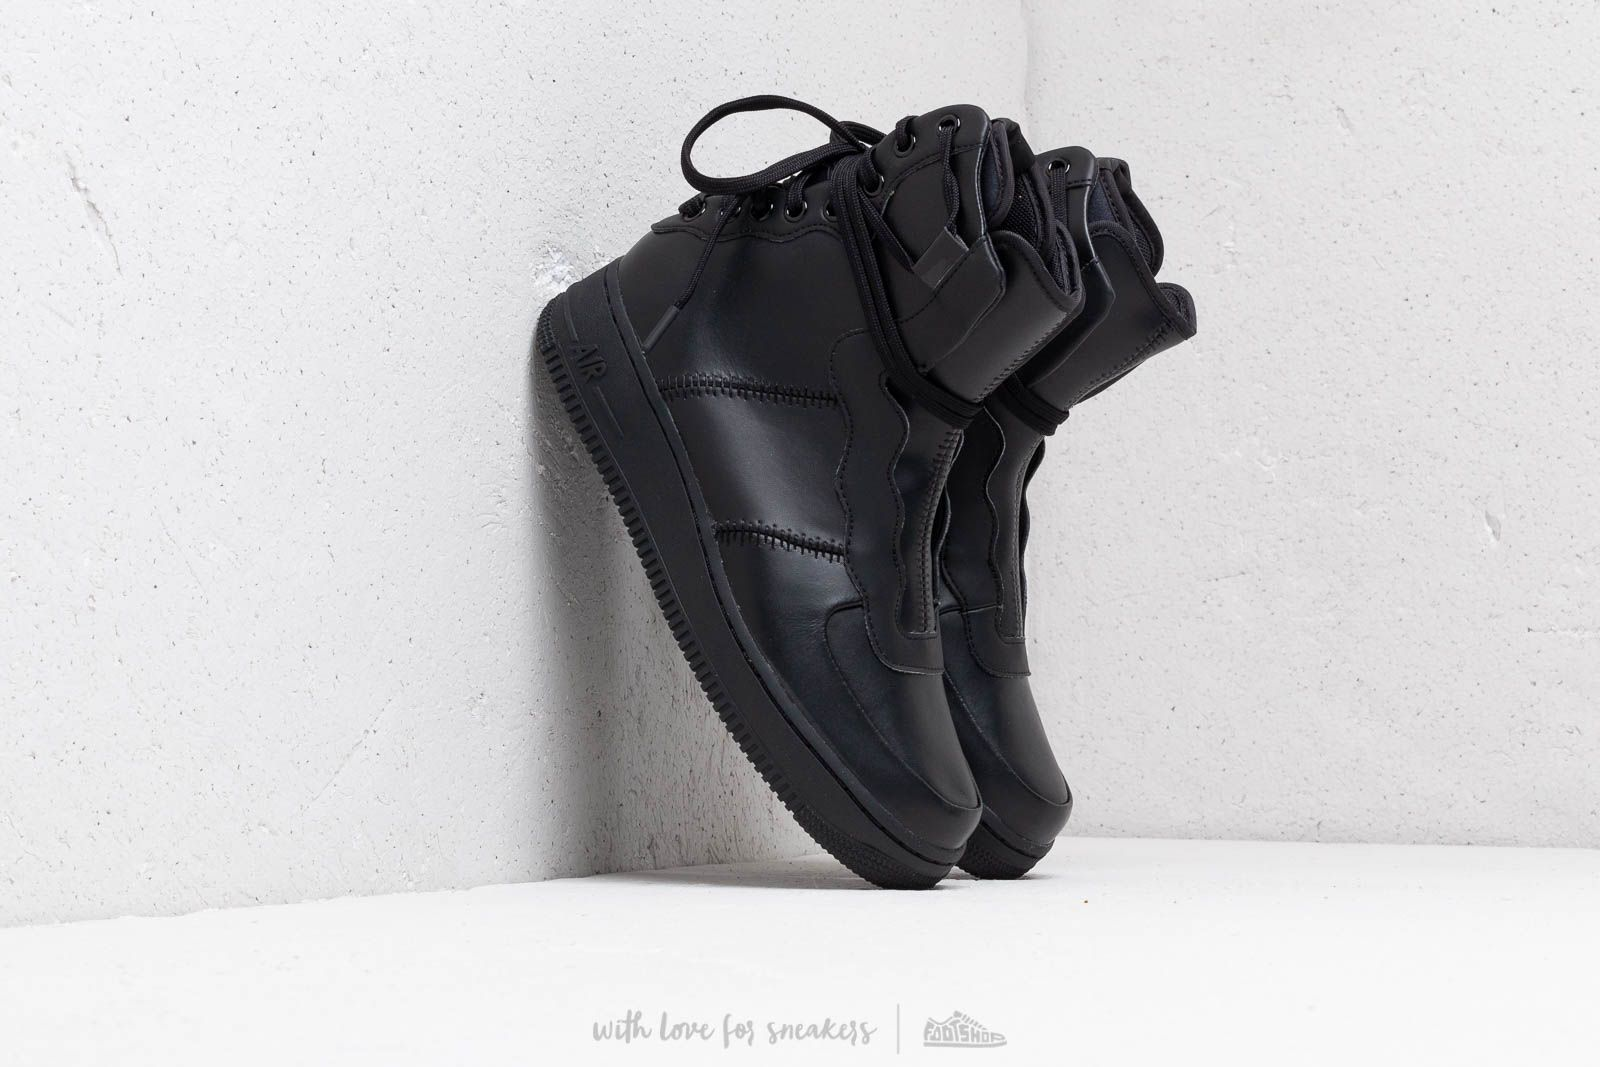 Nike Air Force 1 Rebel XX Wmns Black/ Black/ Black